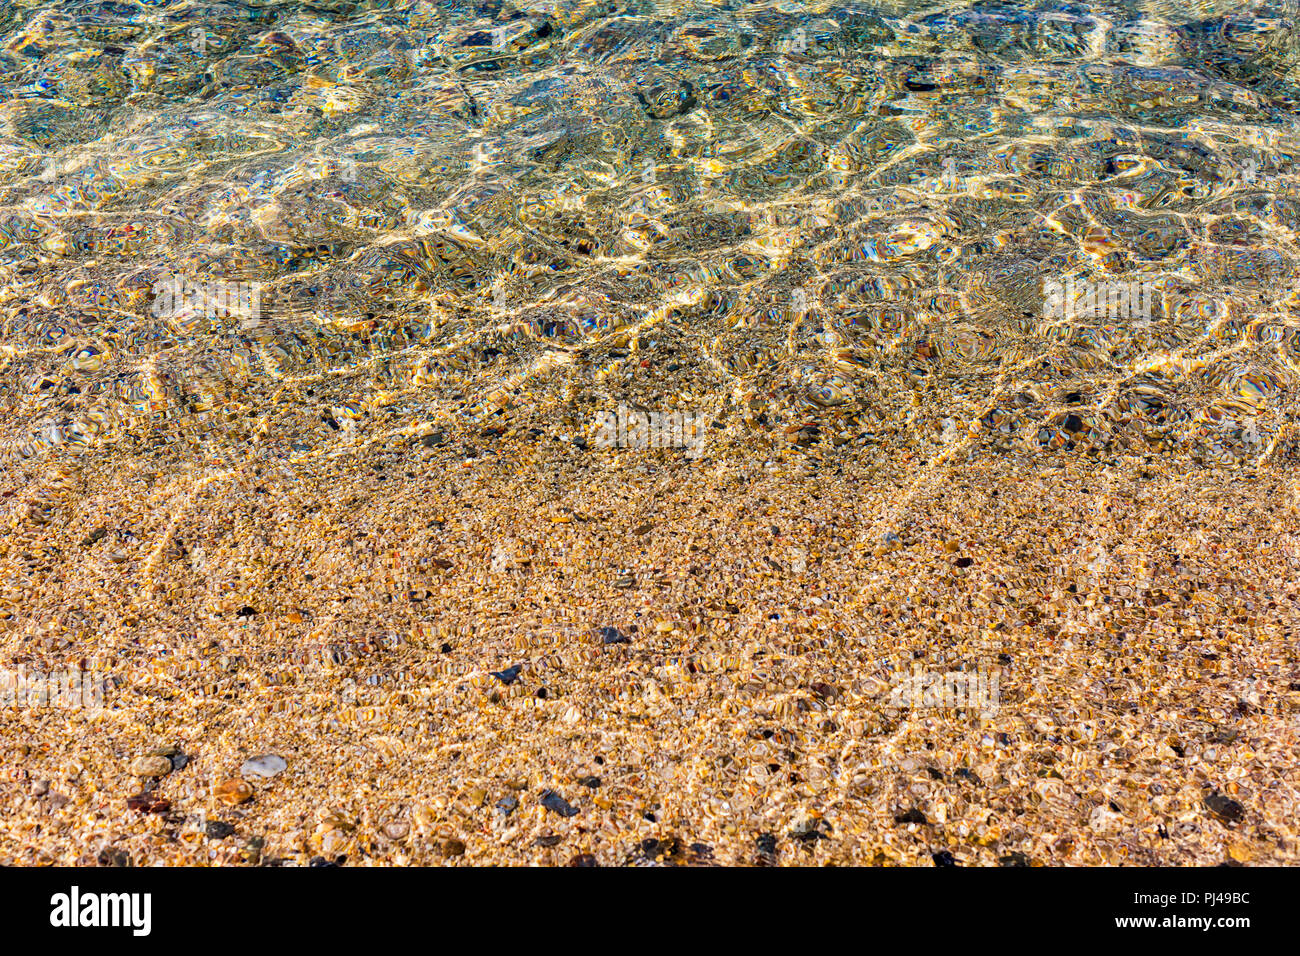 Background Of Transparent Clear Water Sea Iridescent Sunlight Reflecting On Bottom